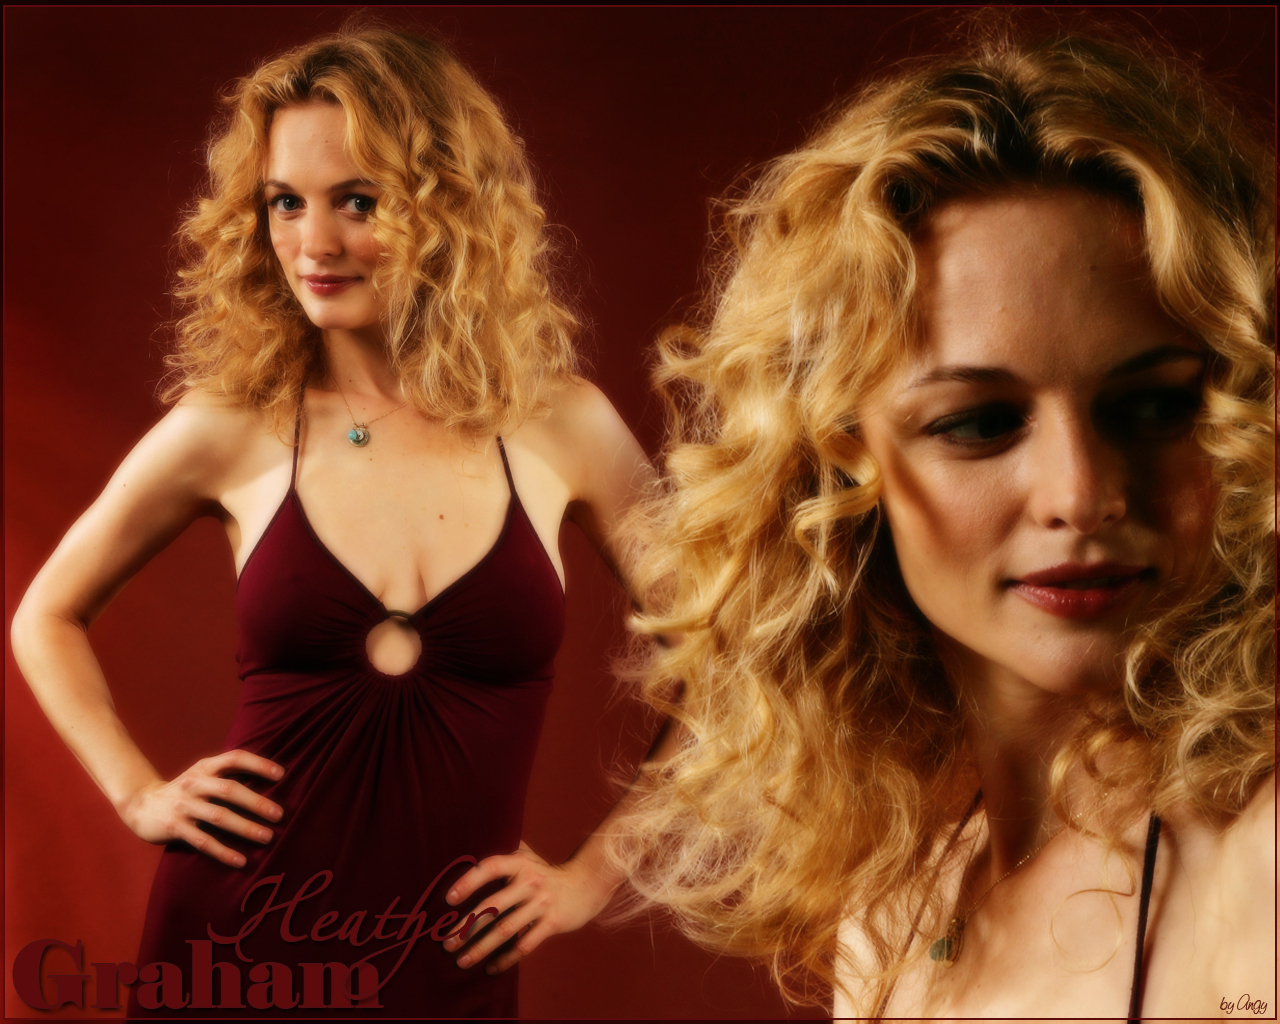 http://images1.fanpop.com/images/photos/1200000/Heather-heather-graham-1283147-1280-1024.jpg